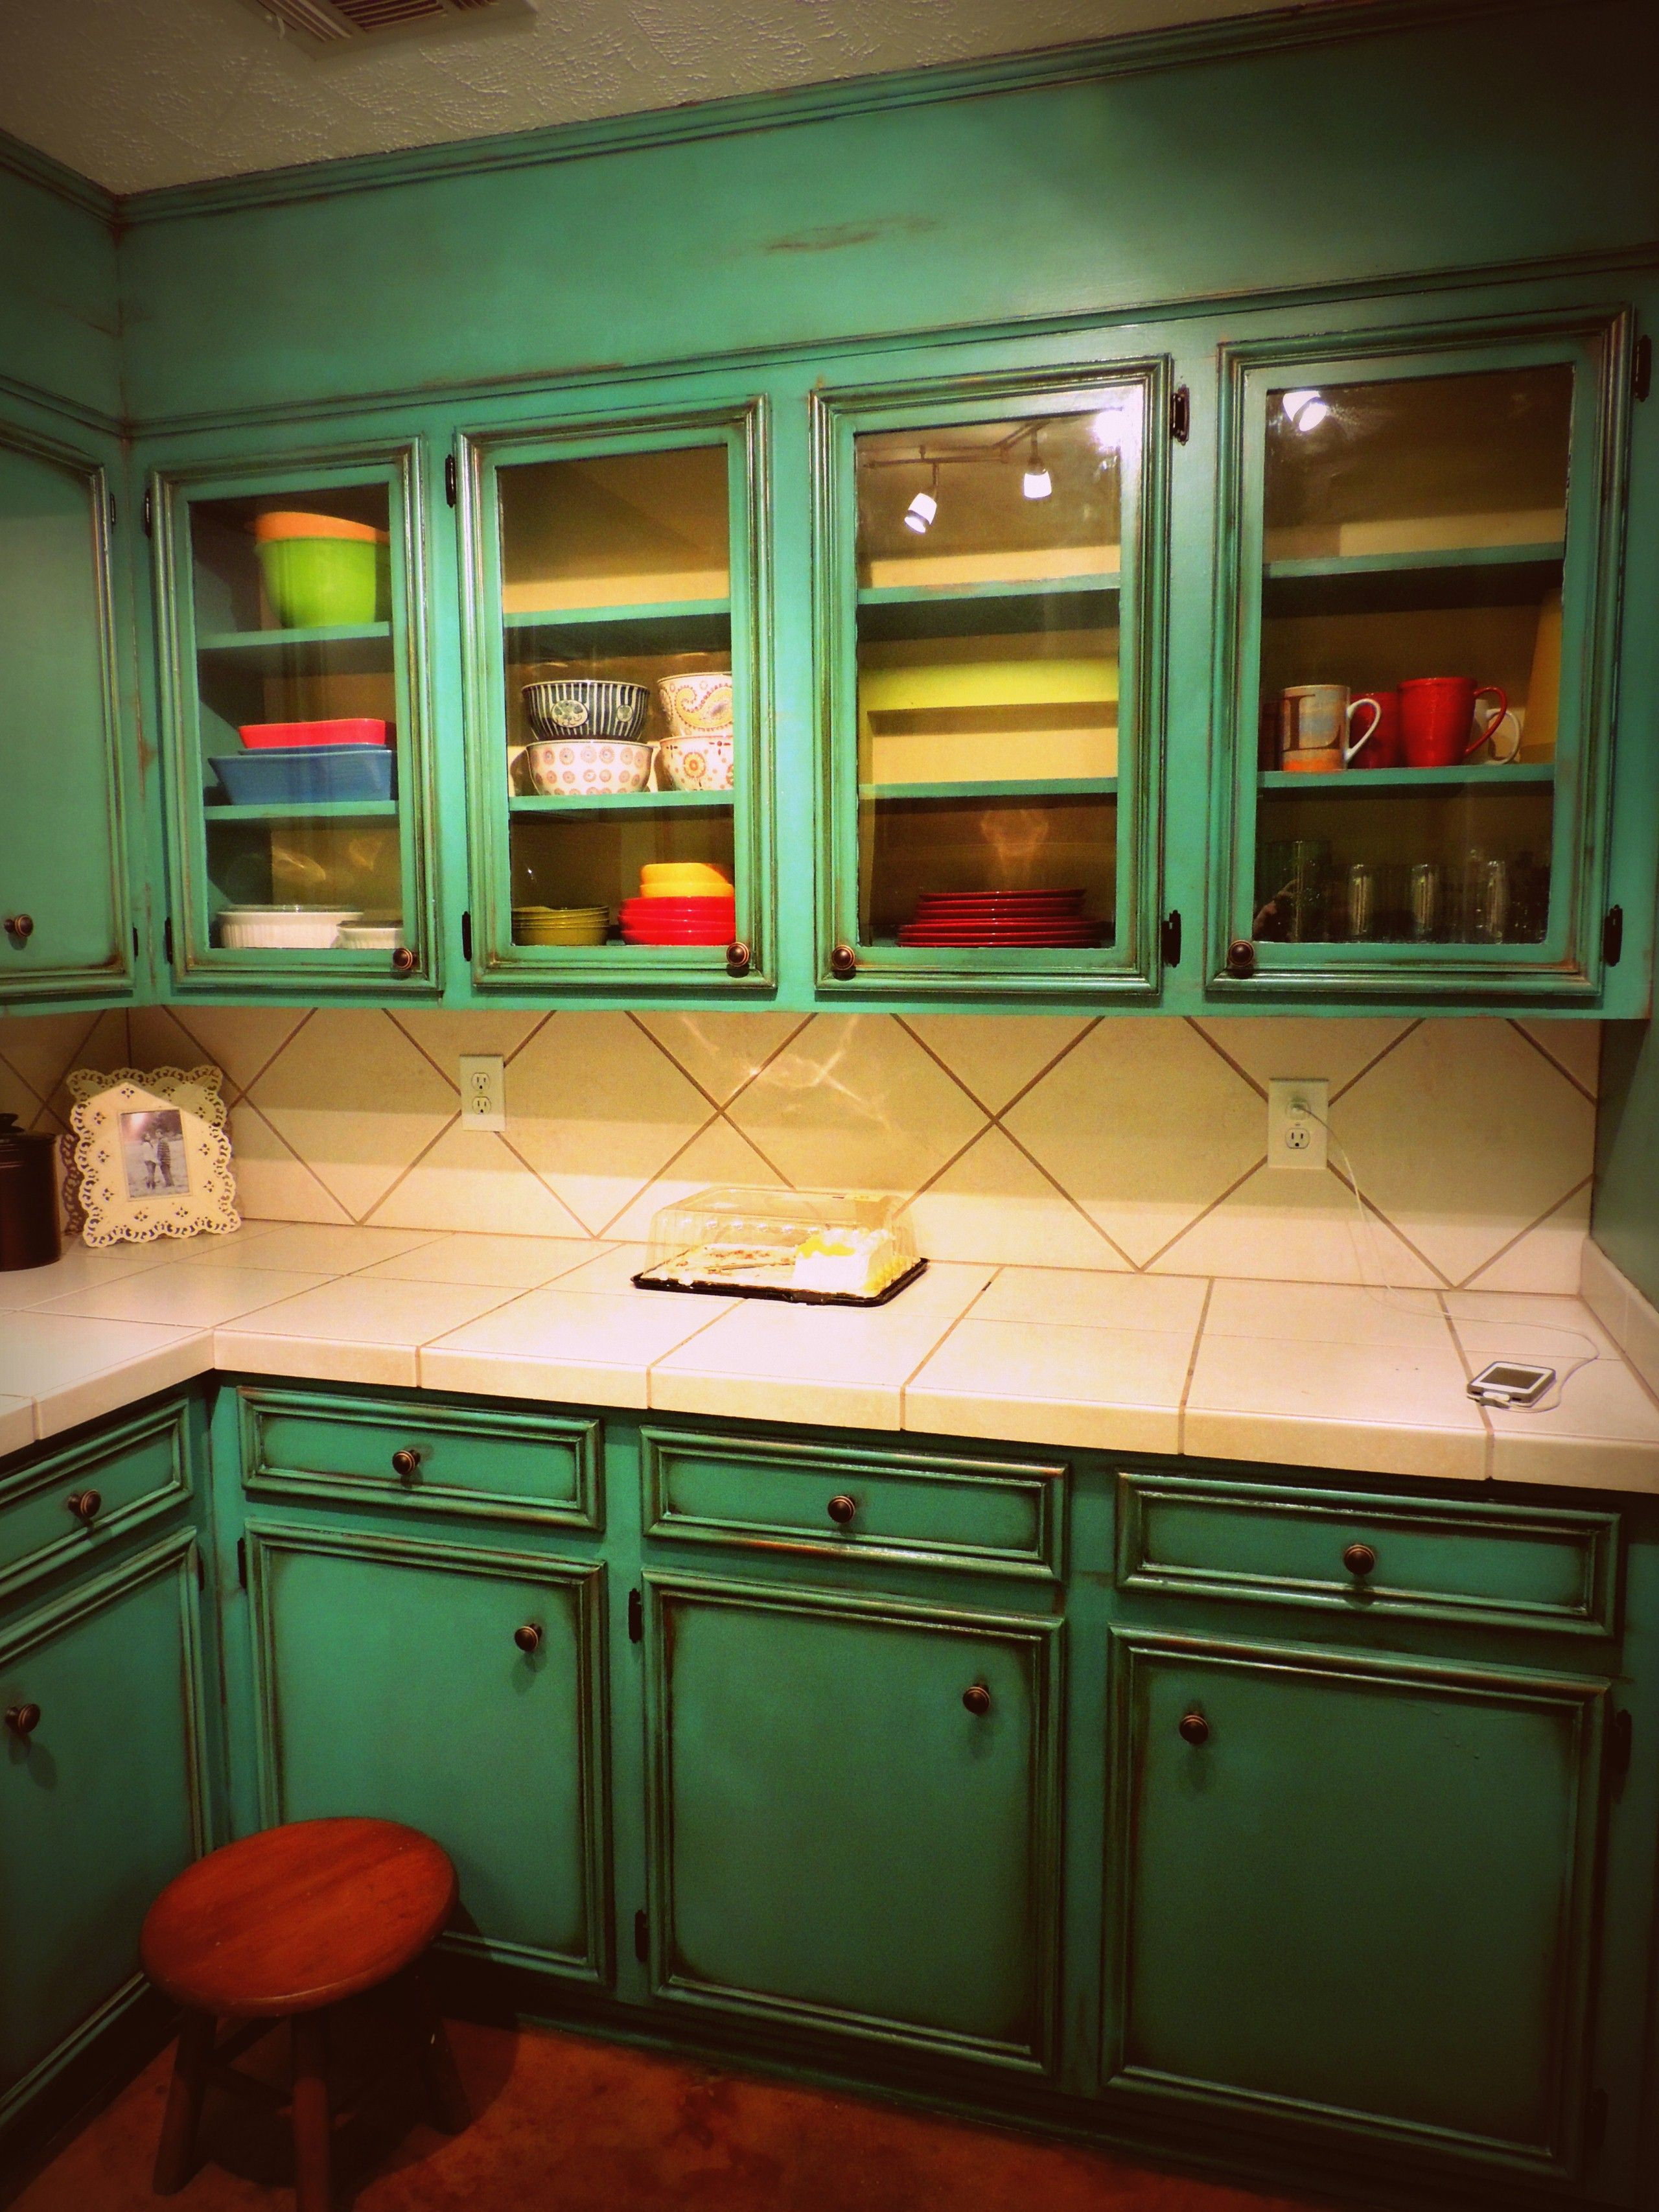 Turquoise Kitchen Decor With Classic Style Kitchen And Laminate